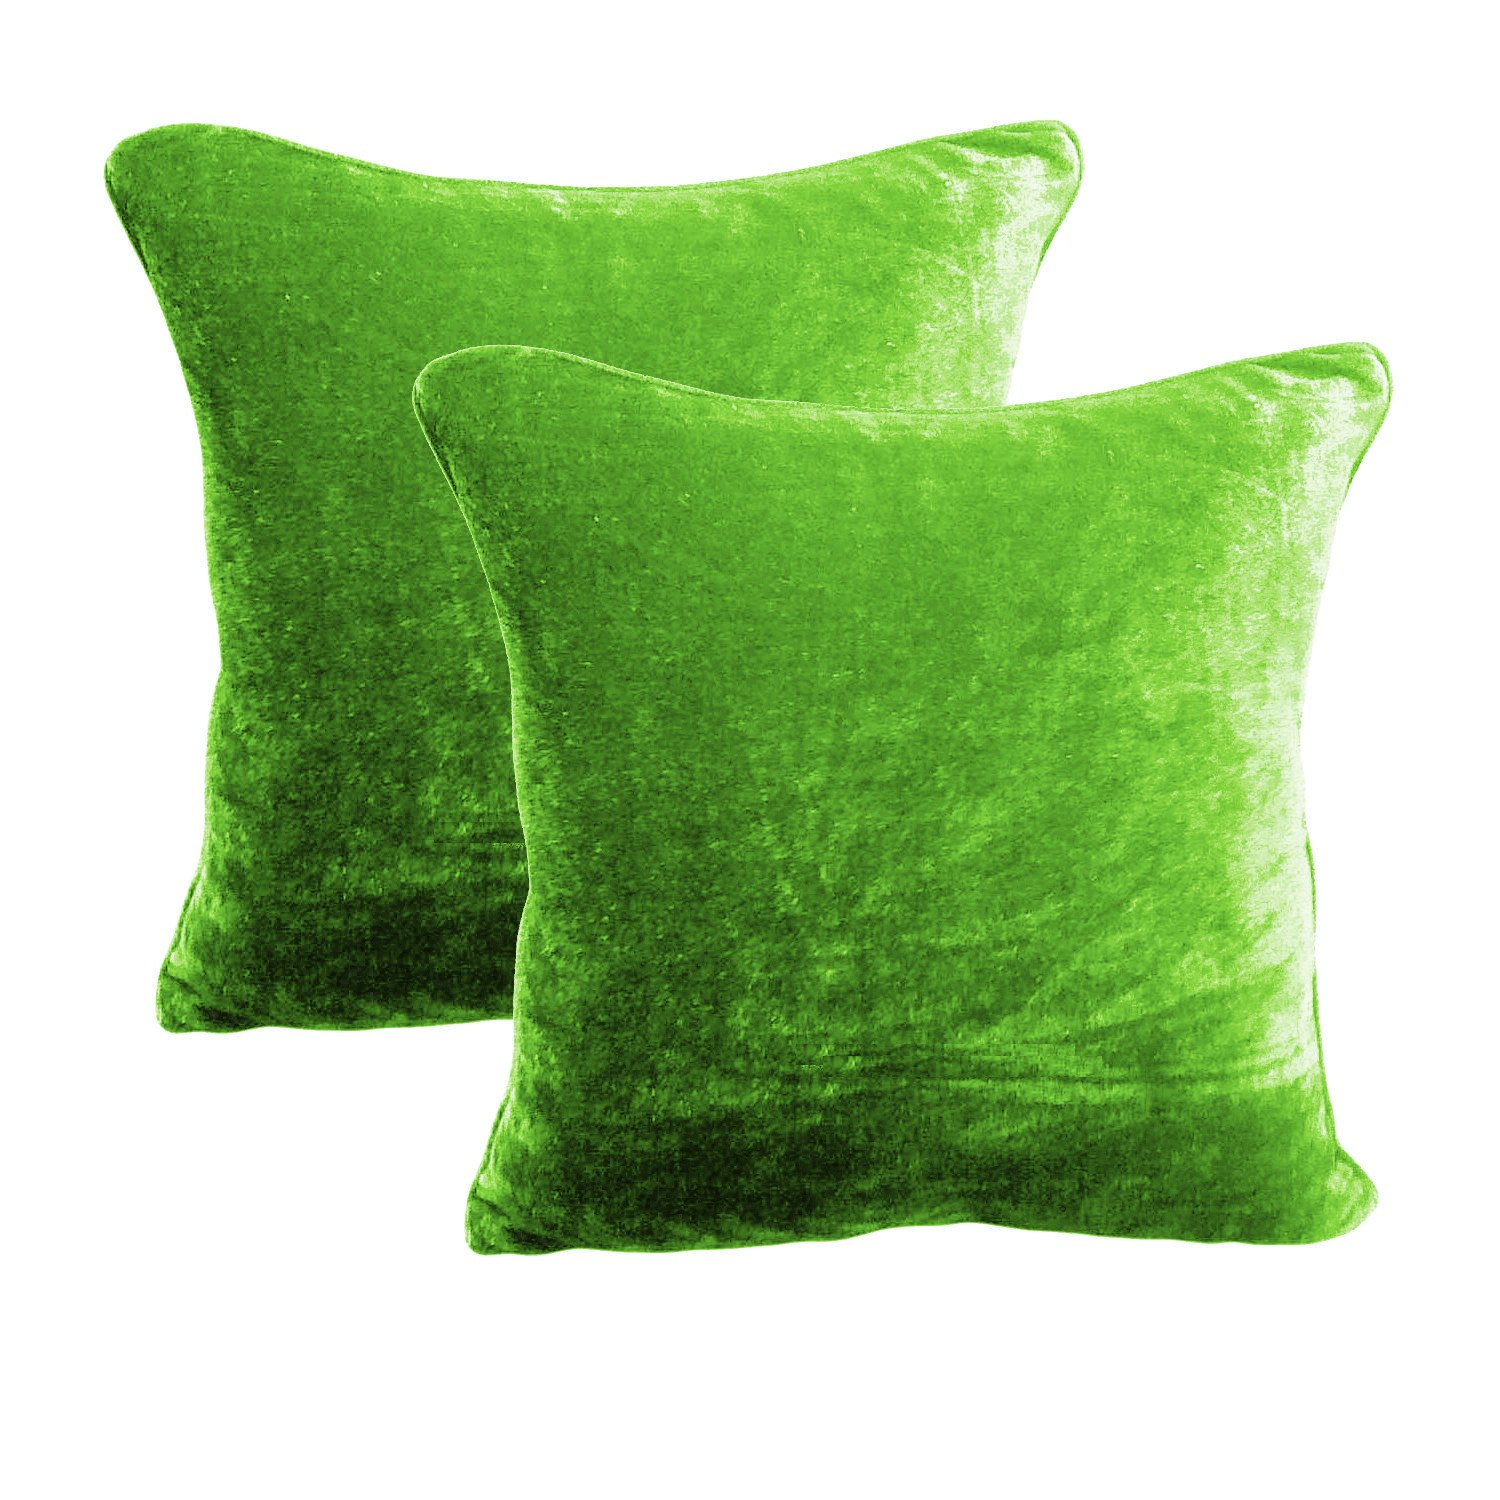 20 by 20 INCHES - 100% COTTON VELVET 6PC ZIPPER PILLOW COVER SHAMS EURO SAGE GREEN